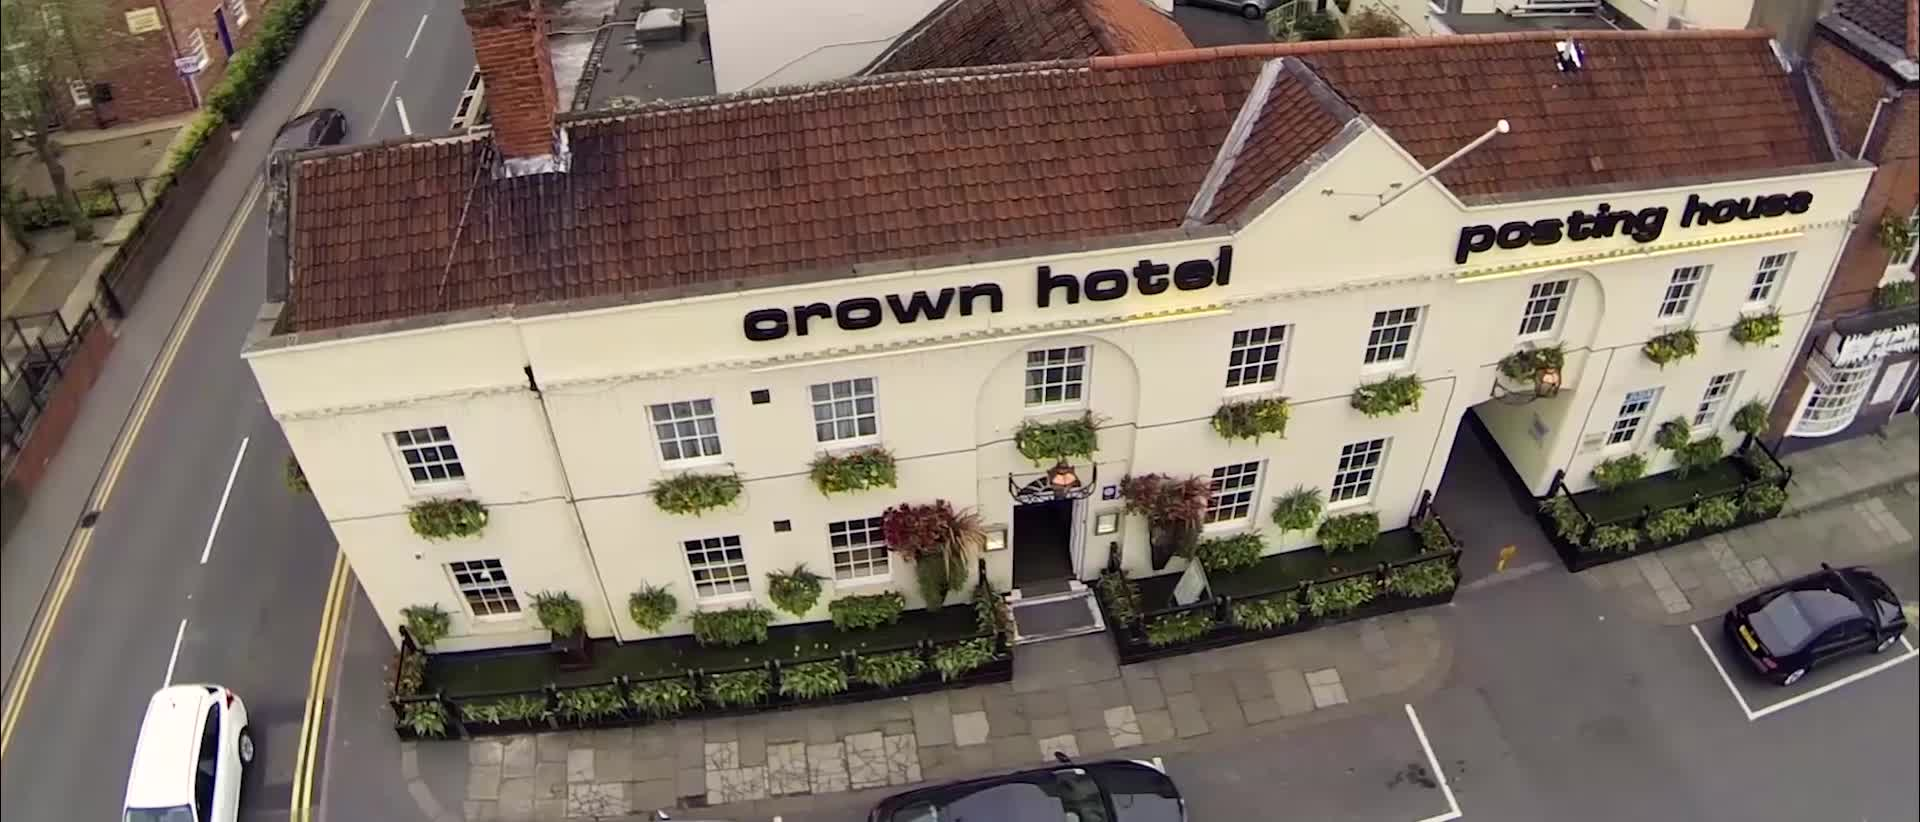 Crown Hotel Bawtry, Doncaster